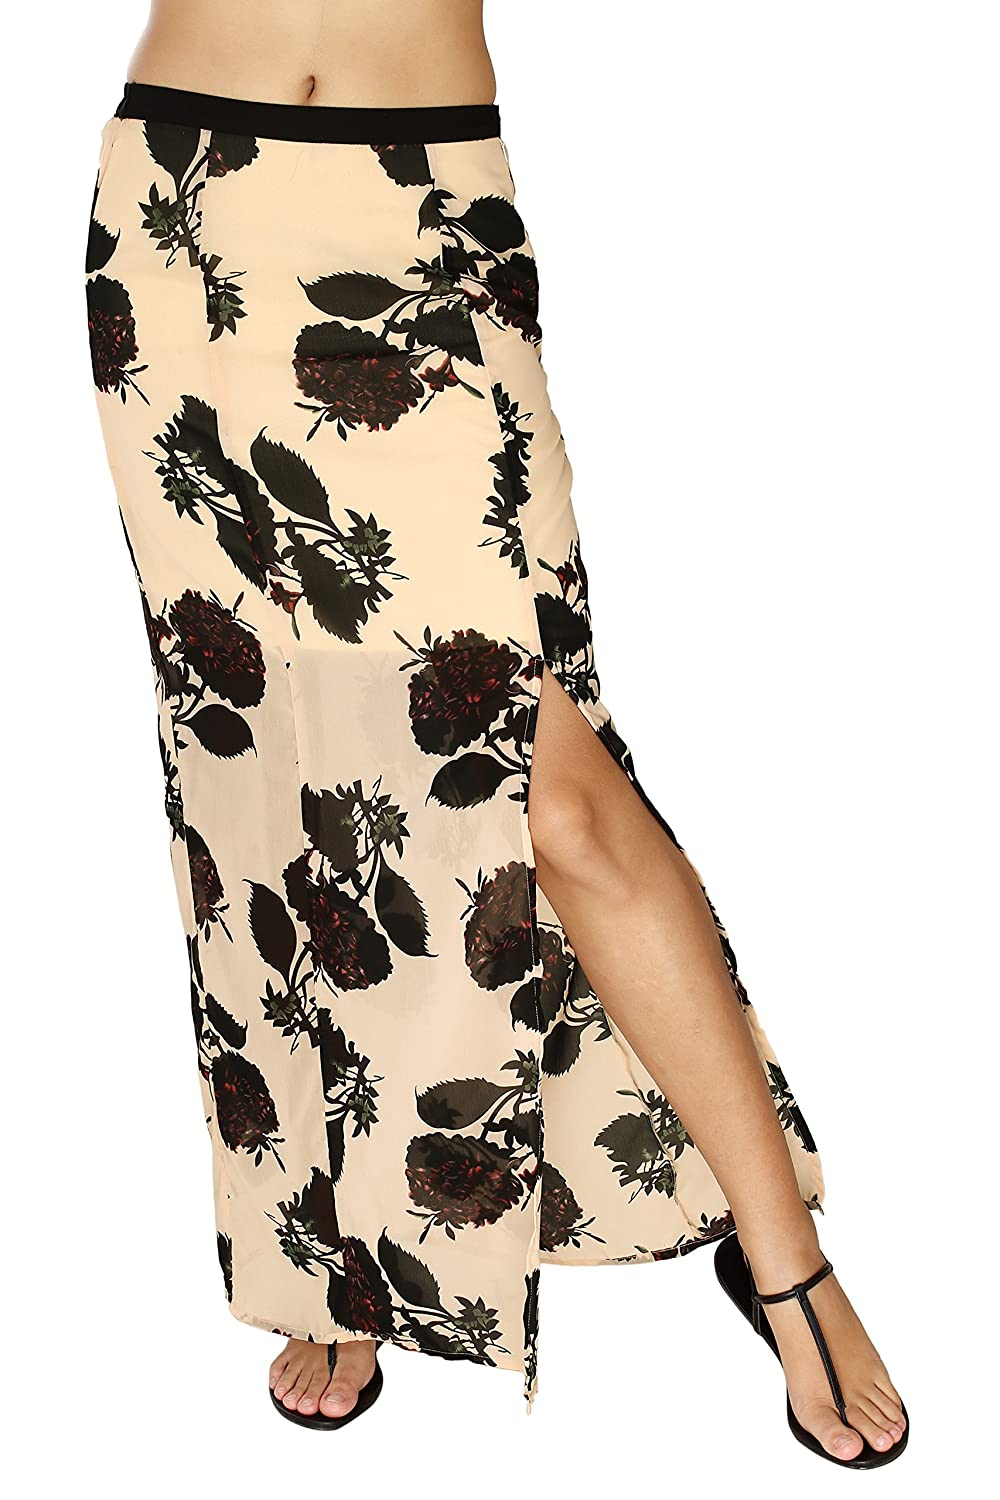 f4ab96f835 Design: Peach floral printed maxi skirt with short lining inside. Zipper on  the left side and elastic on the back waist for fastening and ease. Slit on  the ...